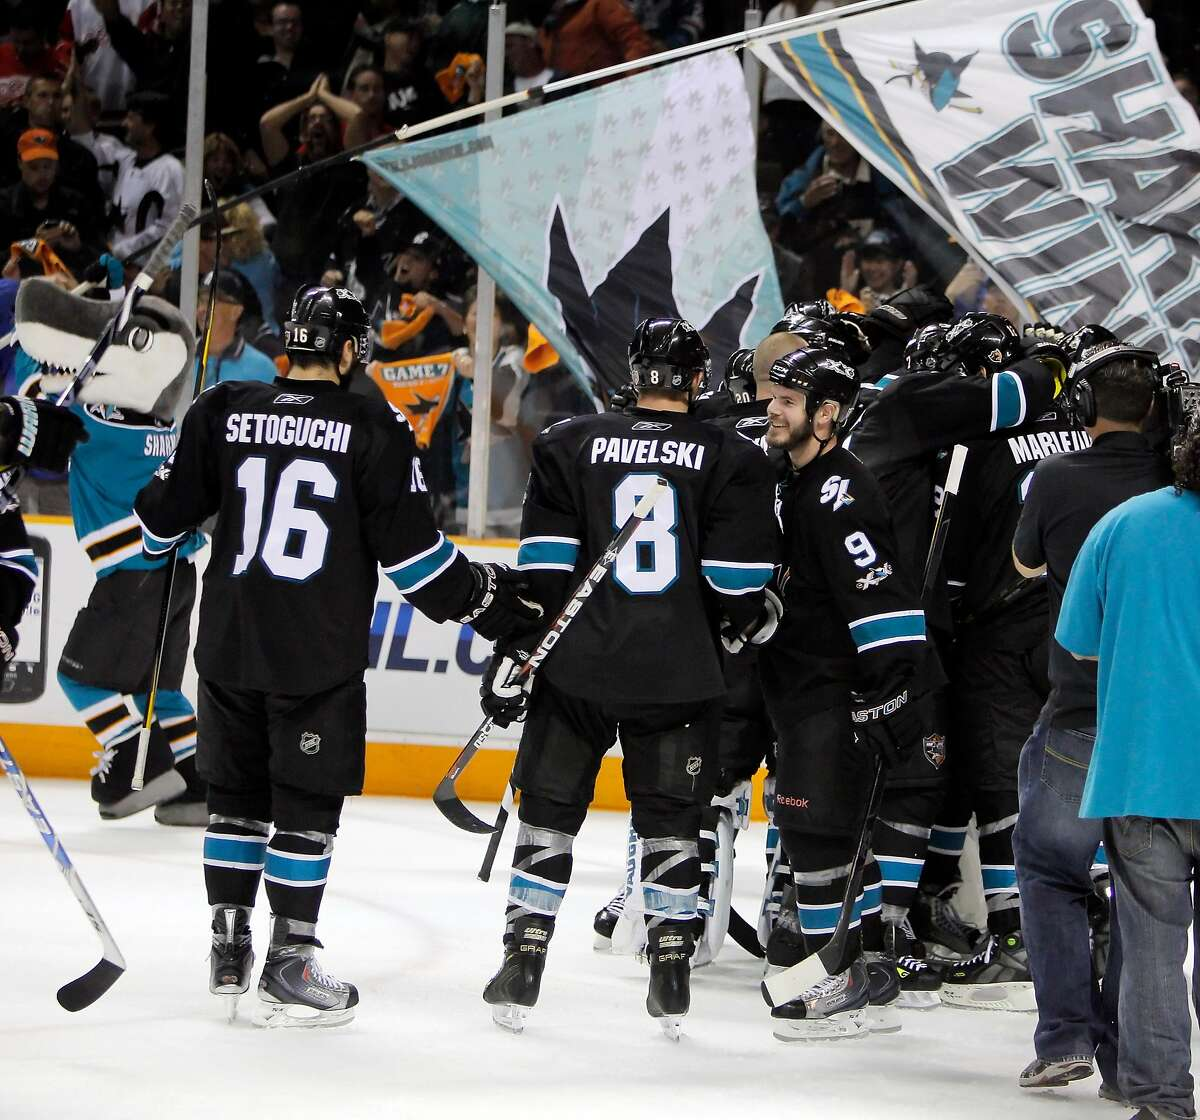 The San Jose Sharks celebrate after winning the game against the Detroit Red Wings 3-2. The San Jose Sharks played the Detroit Red Wings at HP Pavilion in San Jose, Calif., on Thursday, May 12, 2011, in Game 7 of the Western Conference Semifinals.